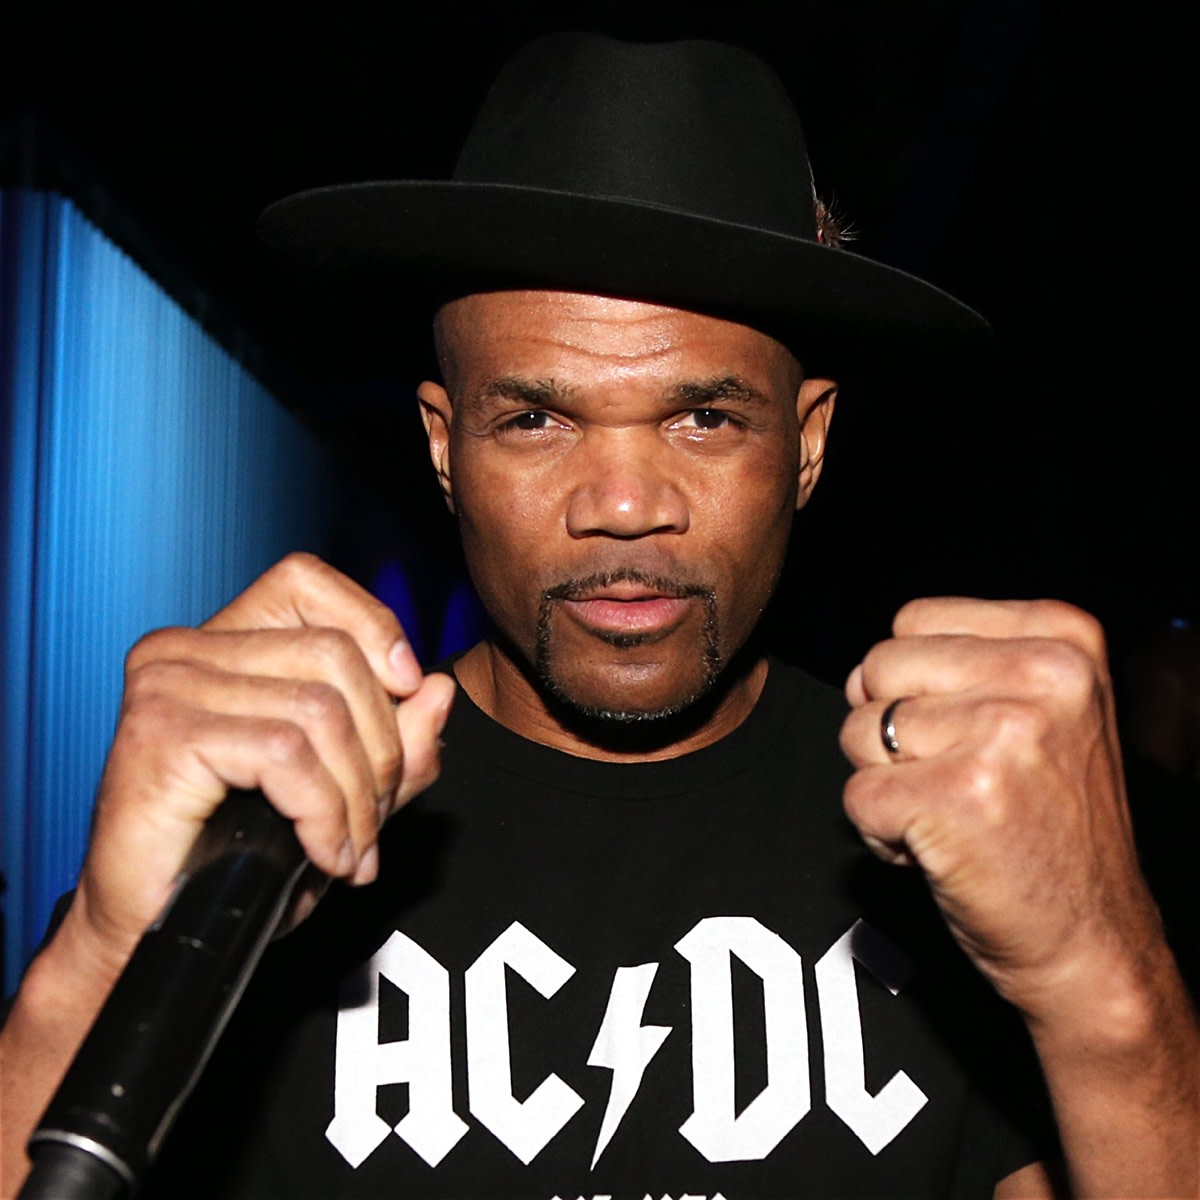 Darryl McDaniels Photo via Getty Images